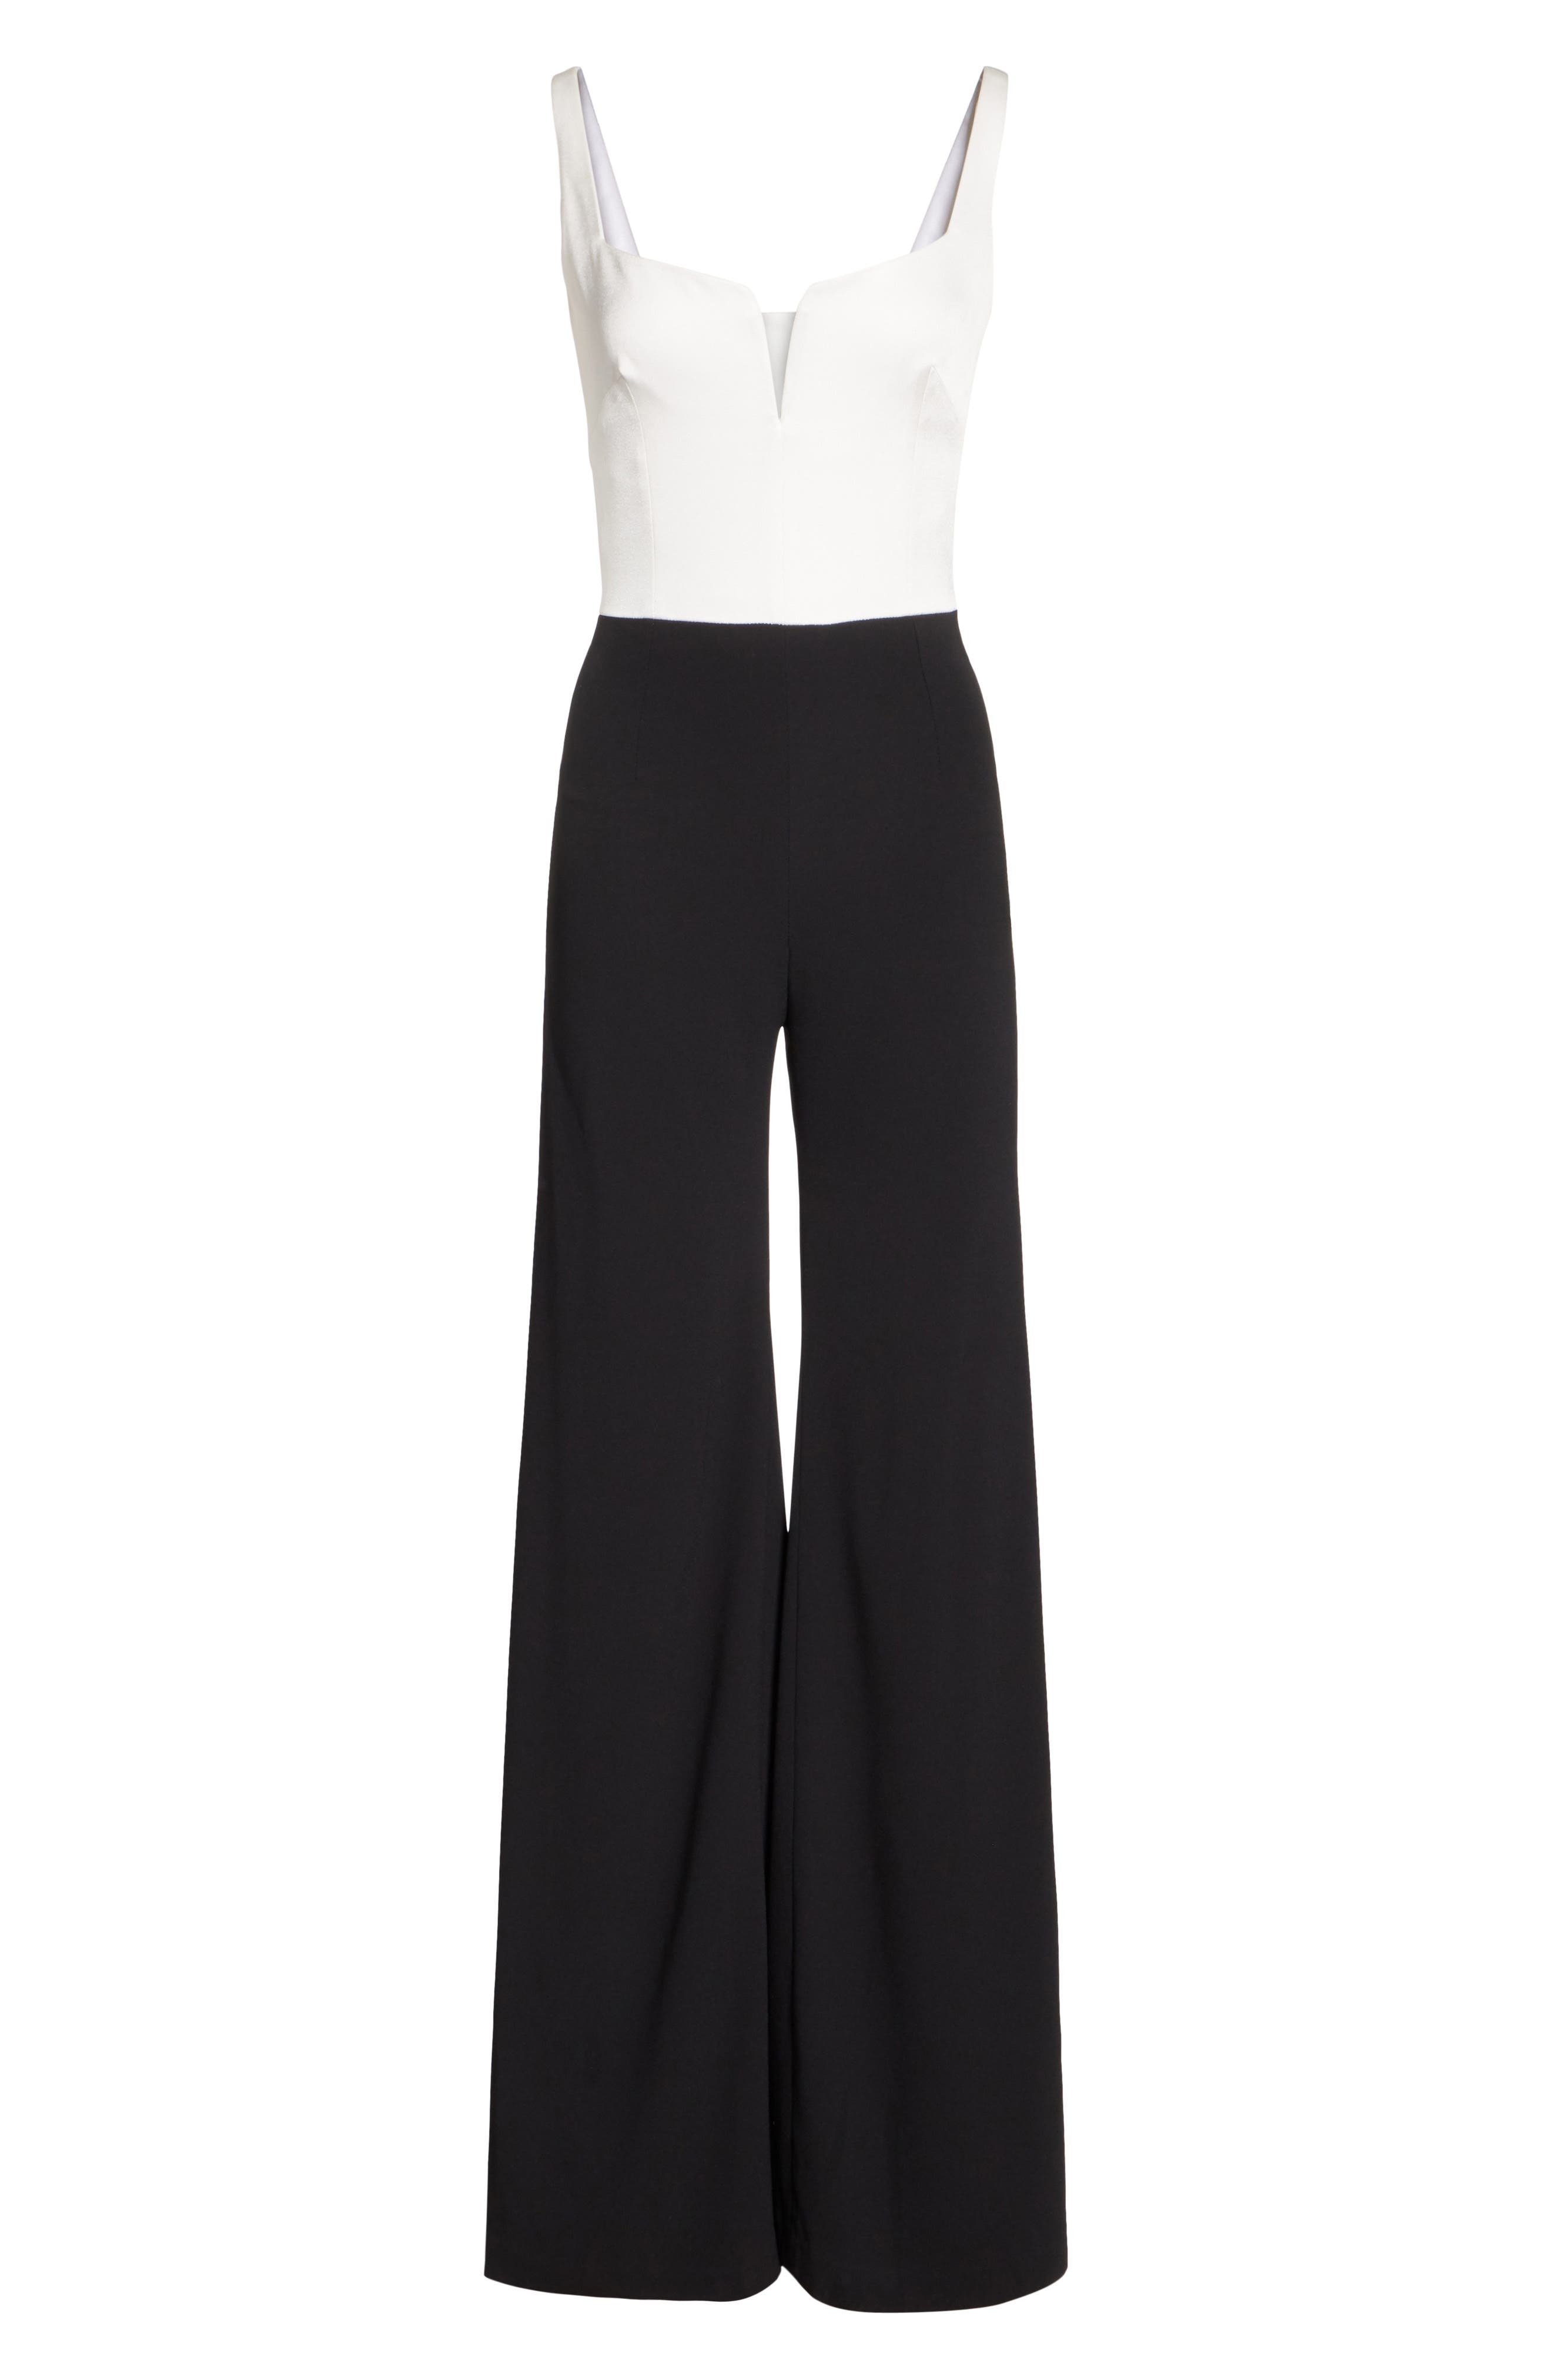 GALVAN, Eclipse Satin & Matte Crepe Jumpsuit, Alternate thumbnail 7, color, WHITE/ BLACK